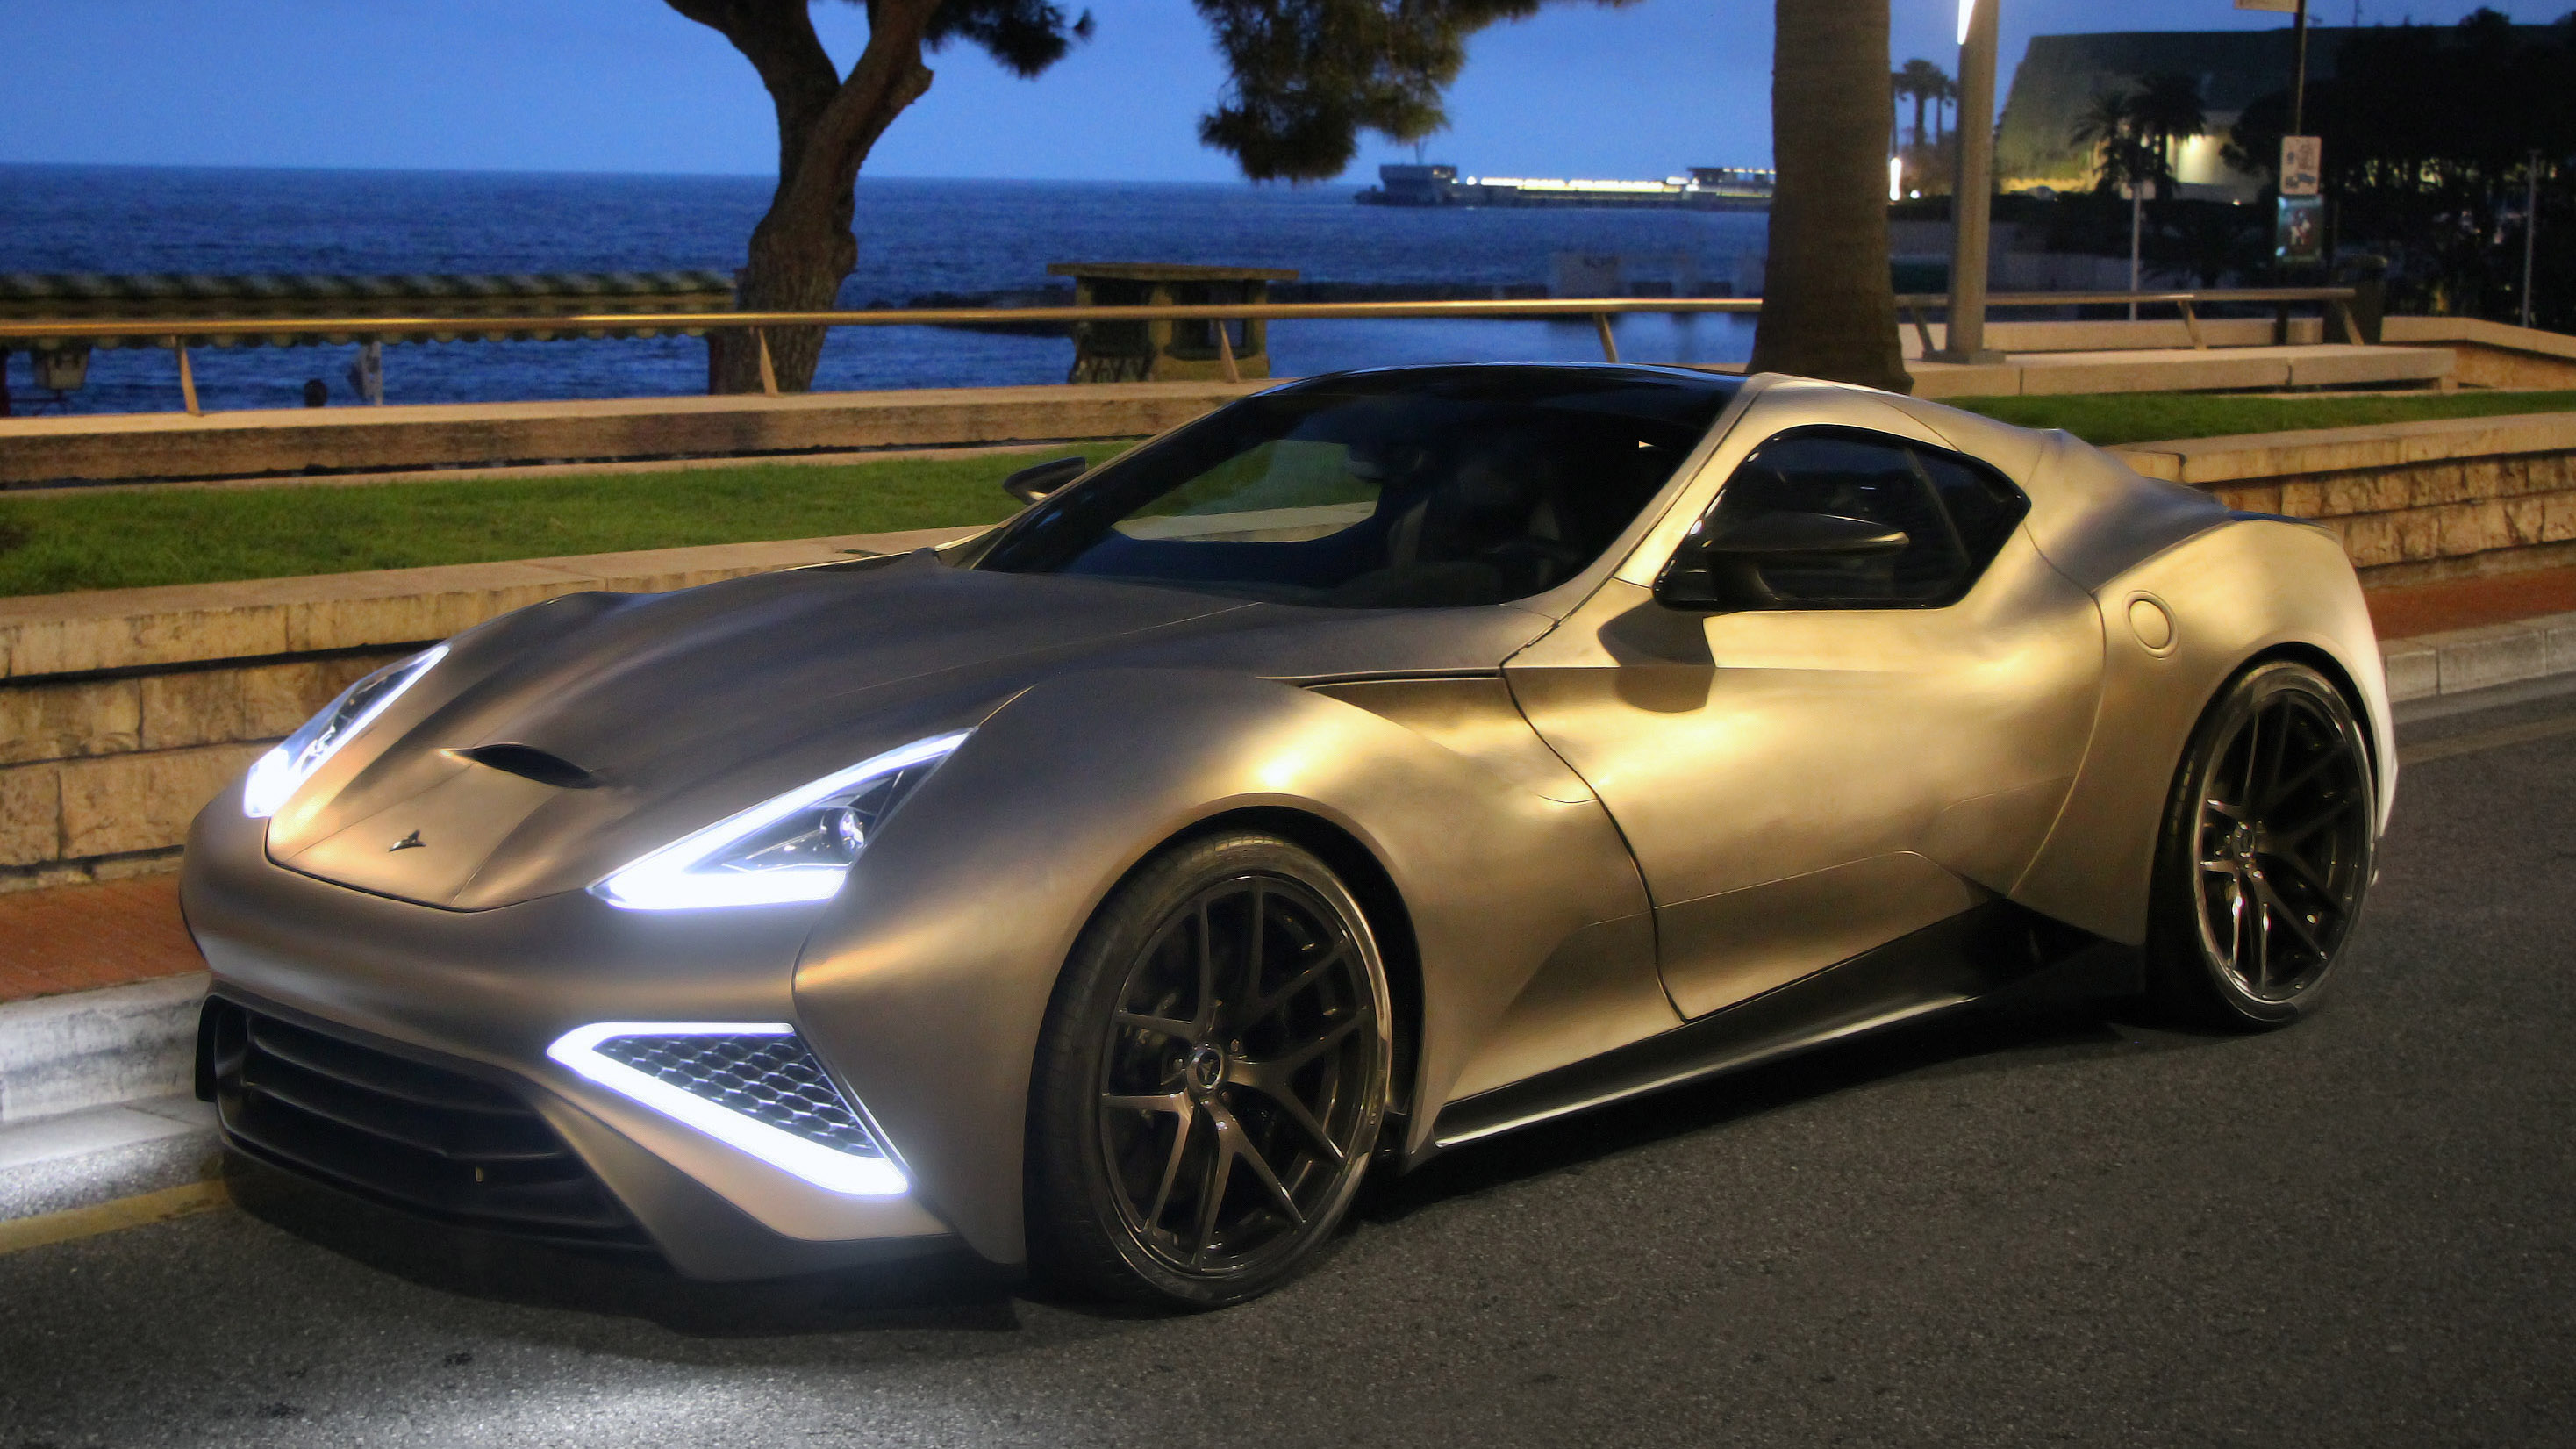 The Vulcano Titanium Is A 670bhp 220mph Italian Supercar